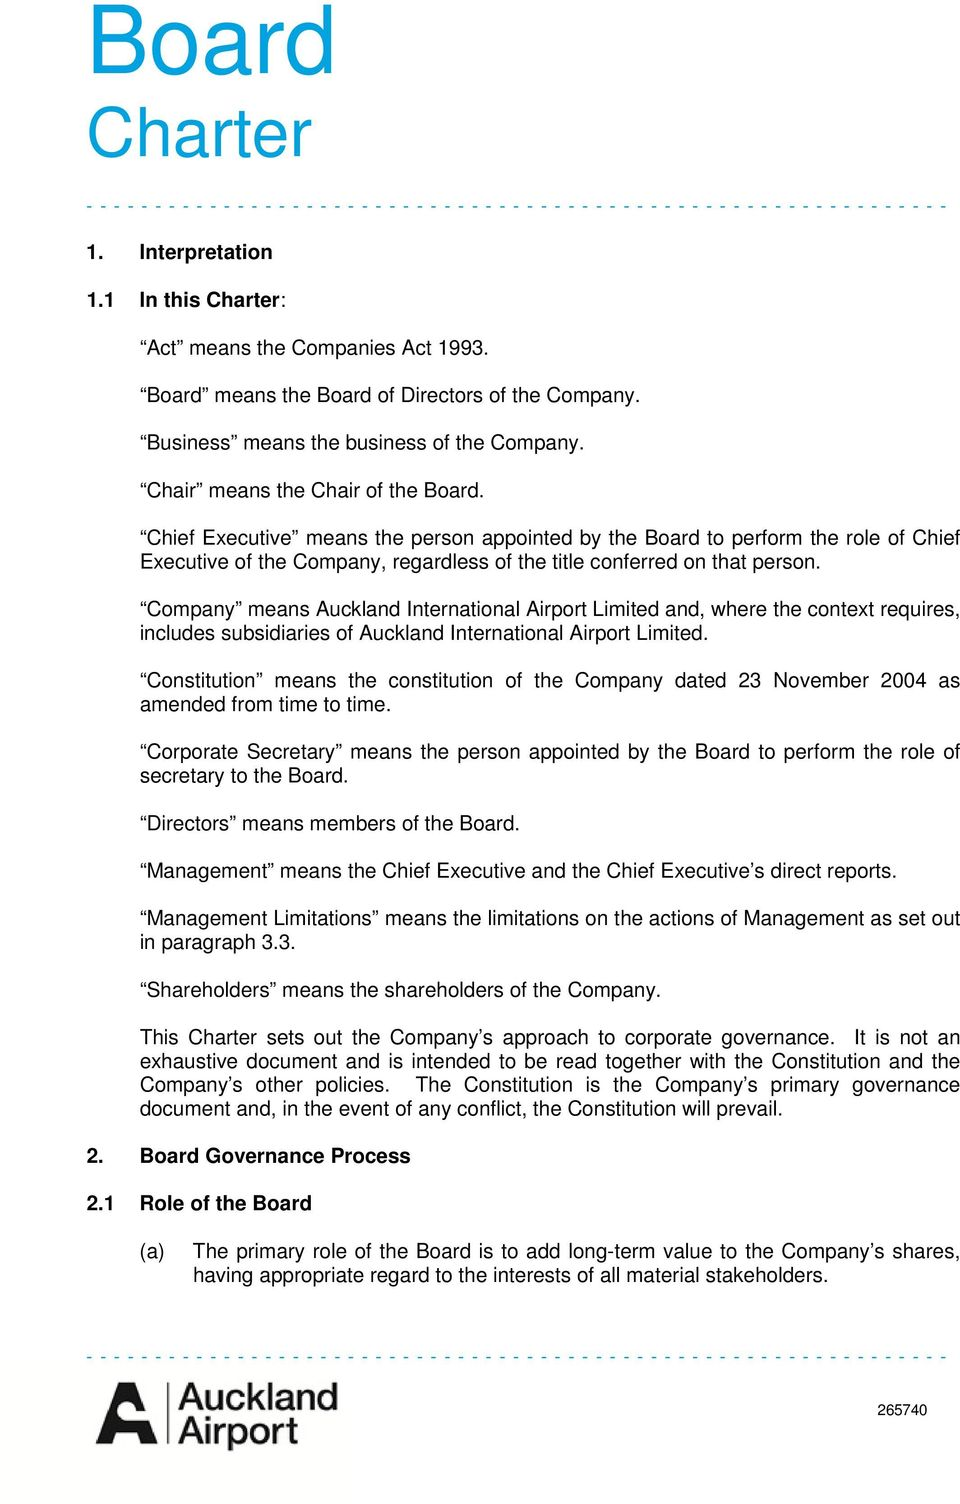 Chief Executive means the person appointed by the Board to perform the role of Chief Executive of the Company, regardless of the title conferred on that person.